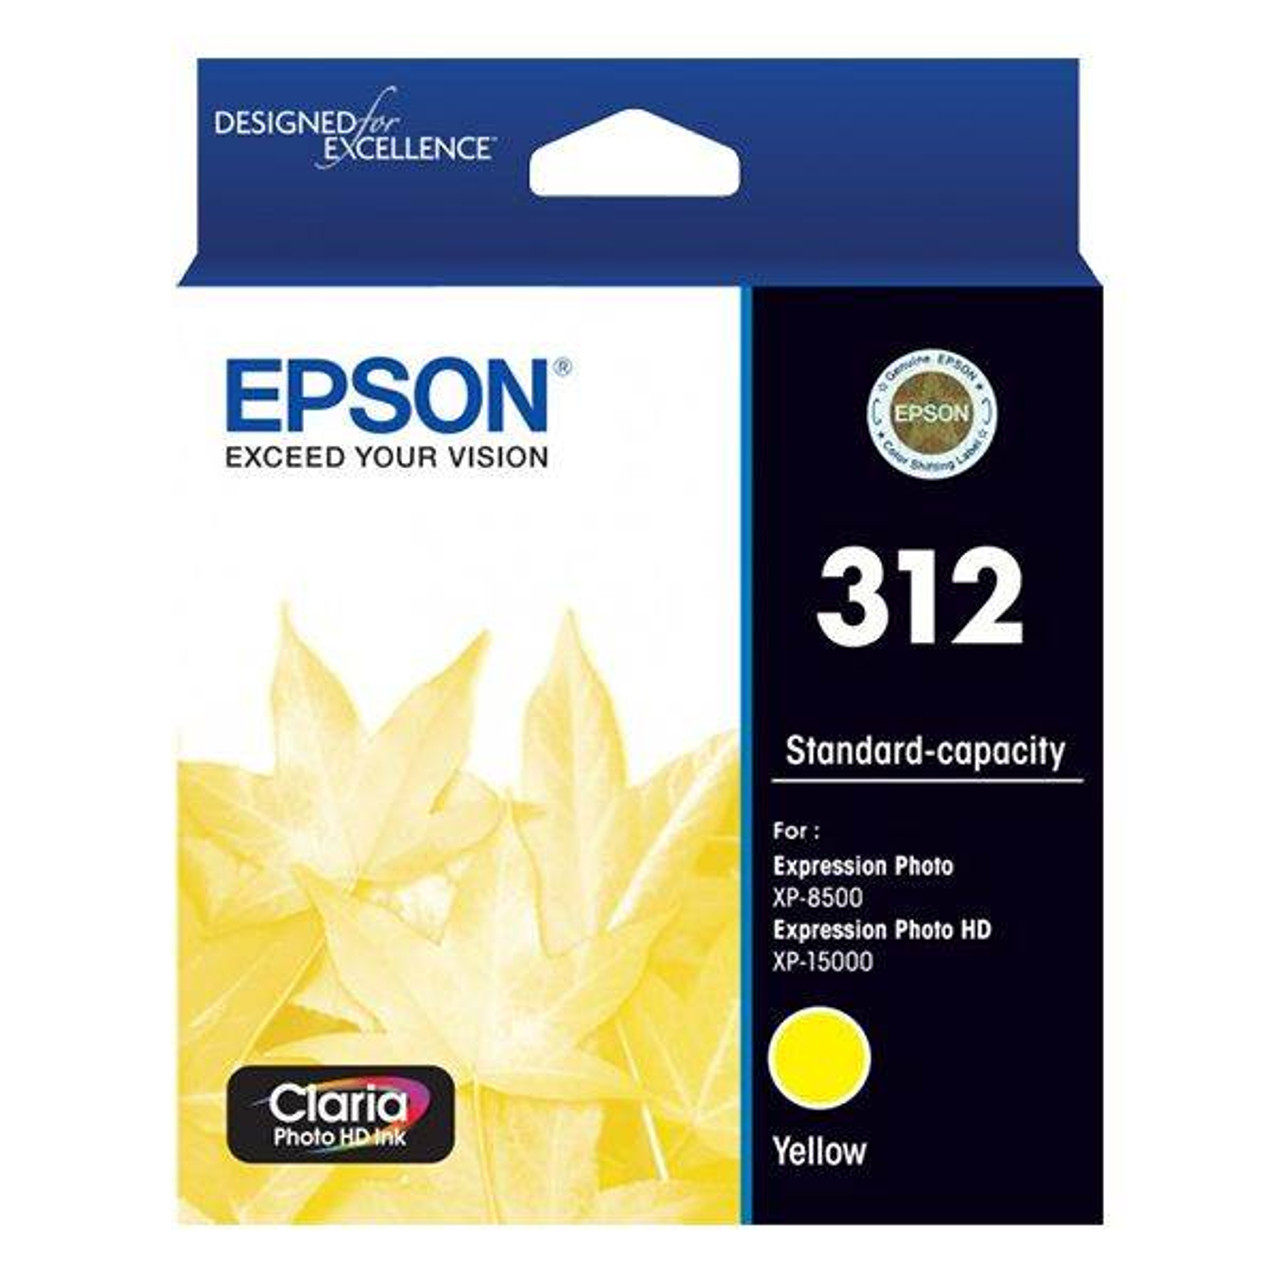 Image for Epson 312 Standard Capacity Claria Photo HD Yellow Ink Cartridge CX Computer Superstore